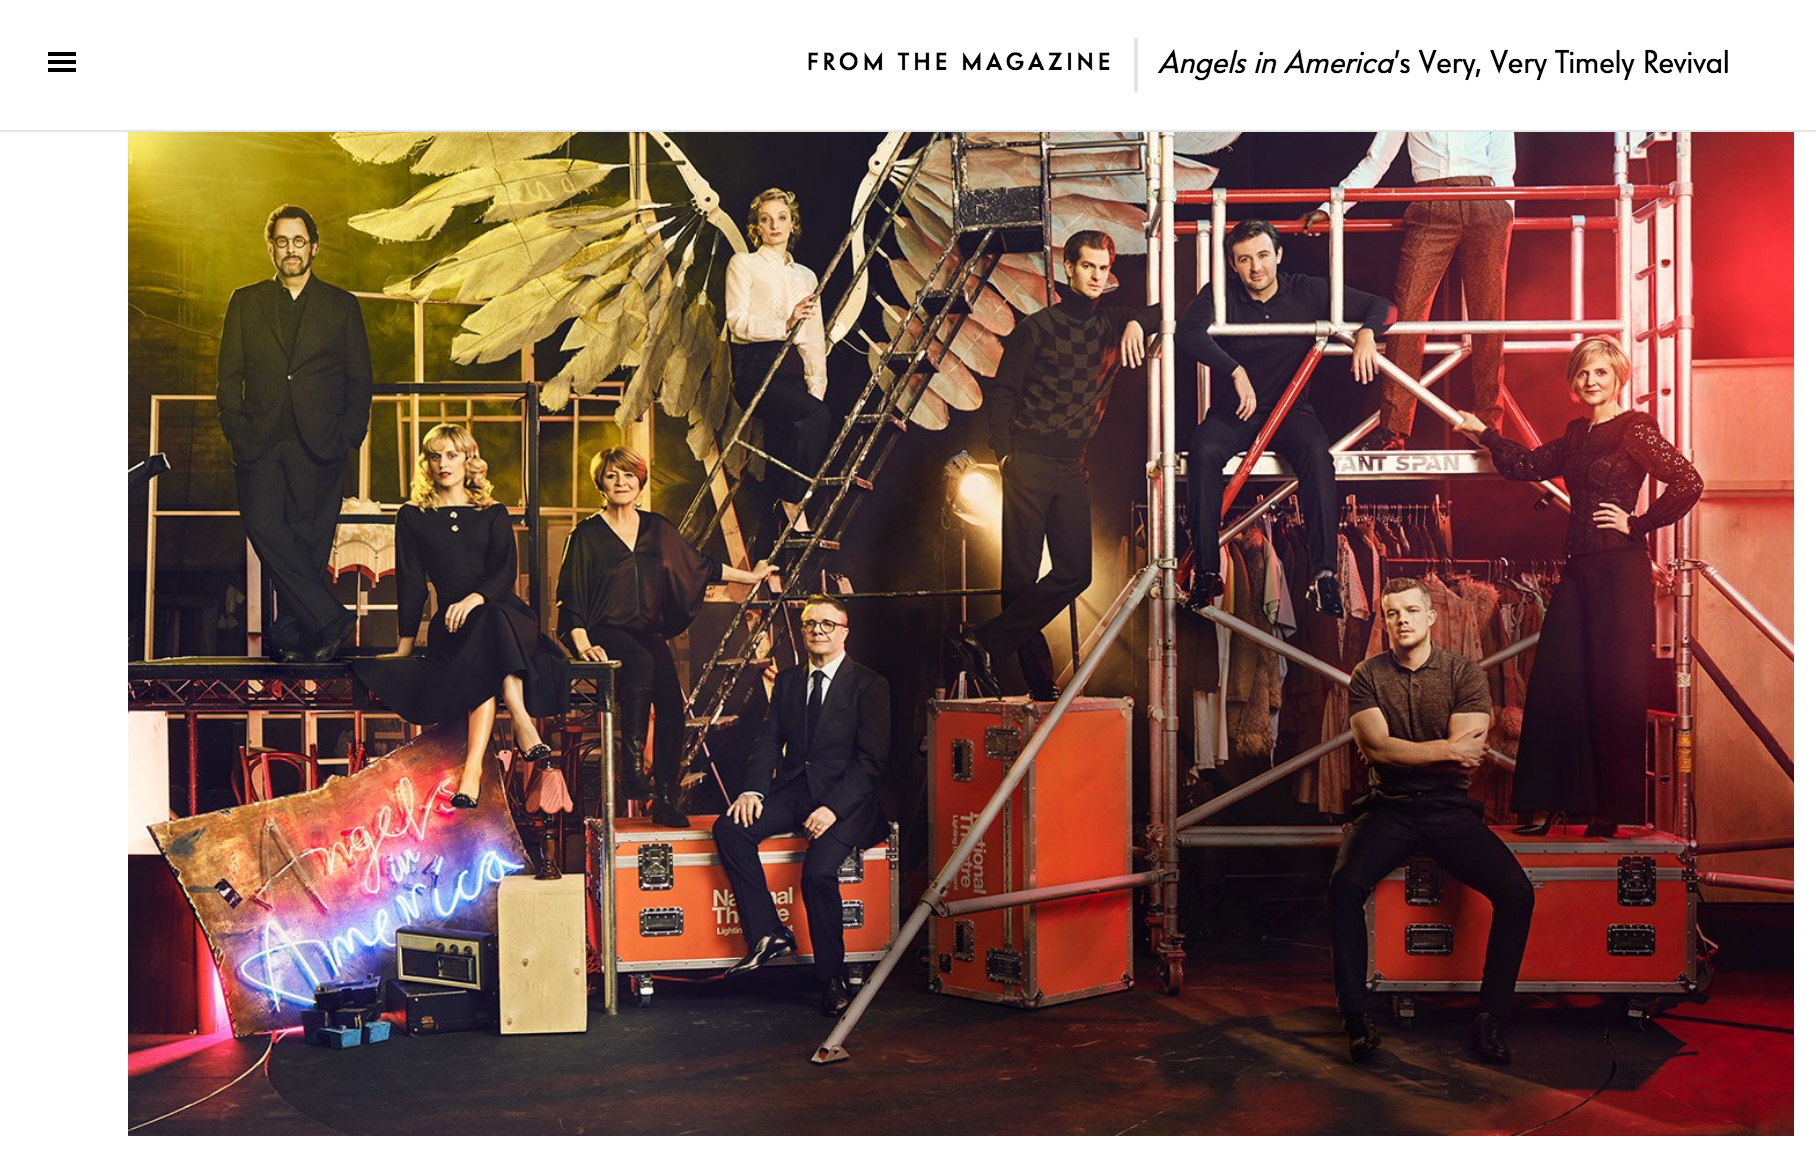 Denise Gough and Angels in America cast